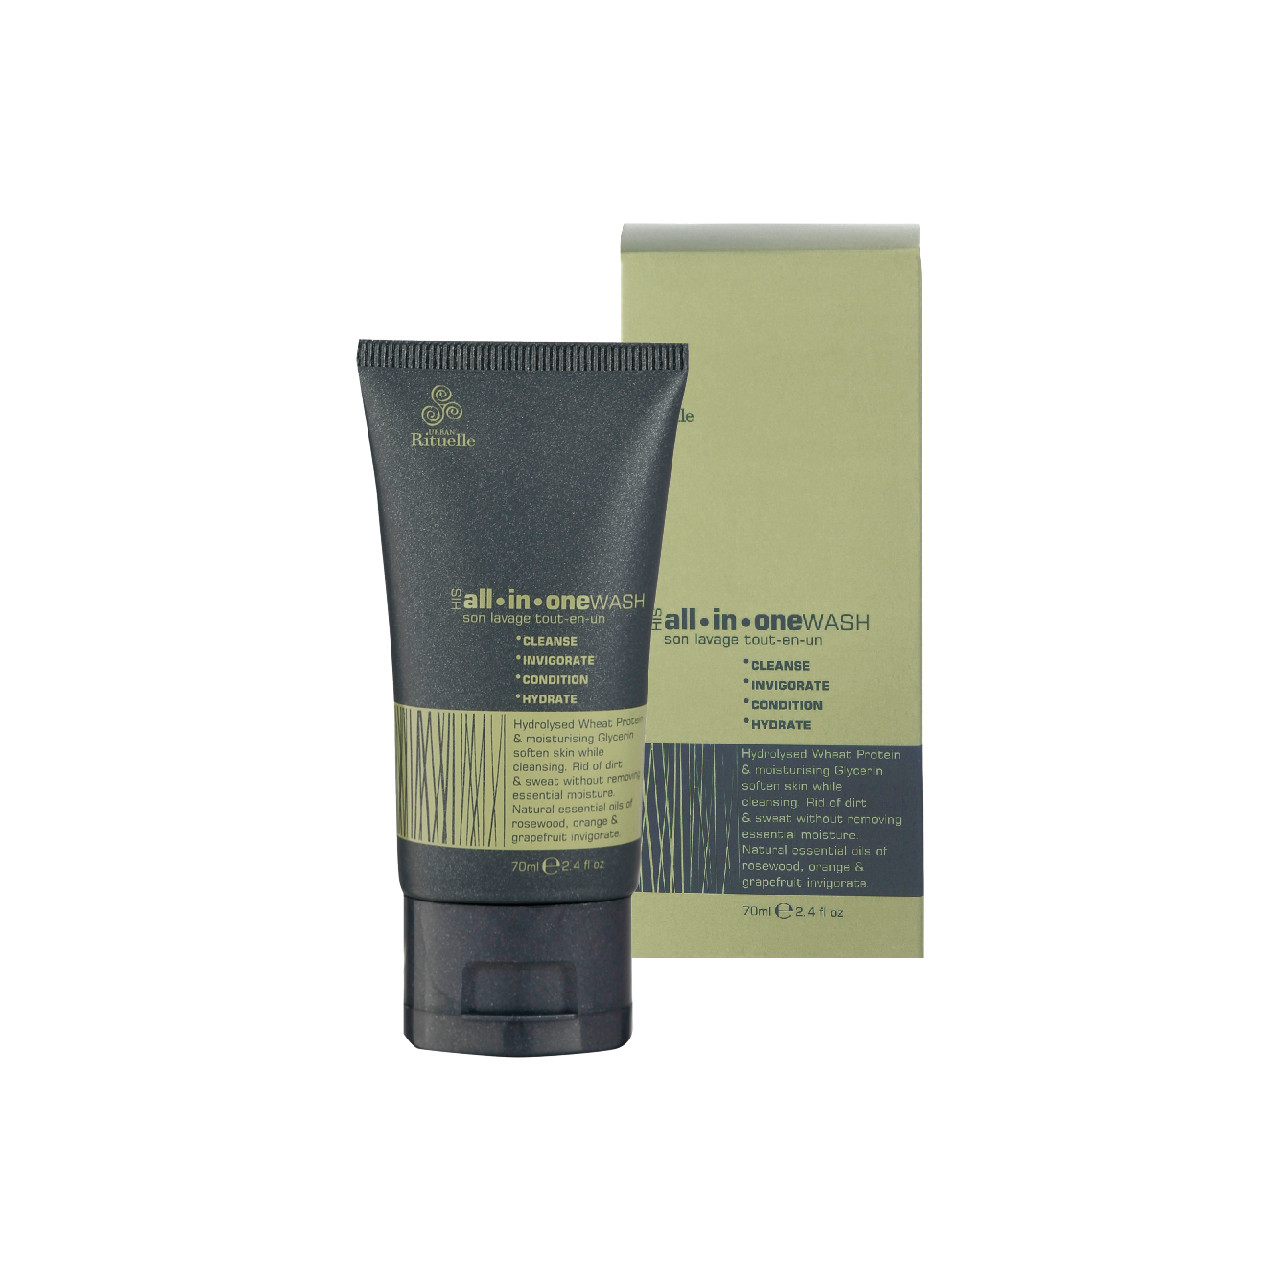 HIS - Travel All-In-One Wash - Urban Rituelle